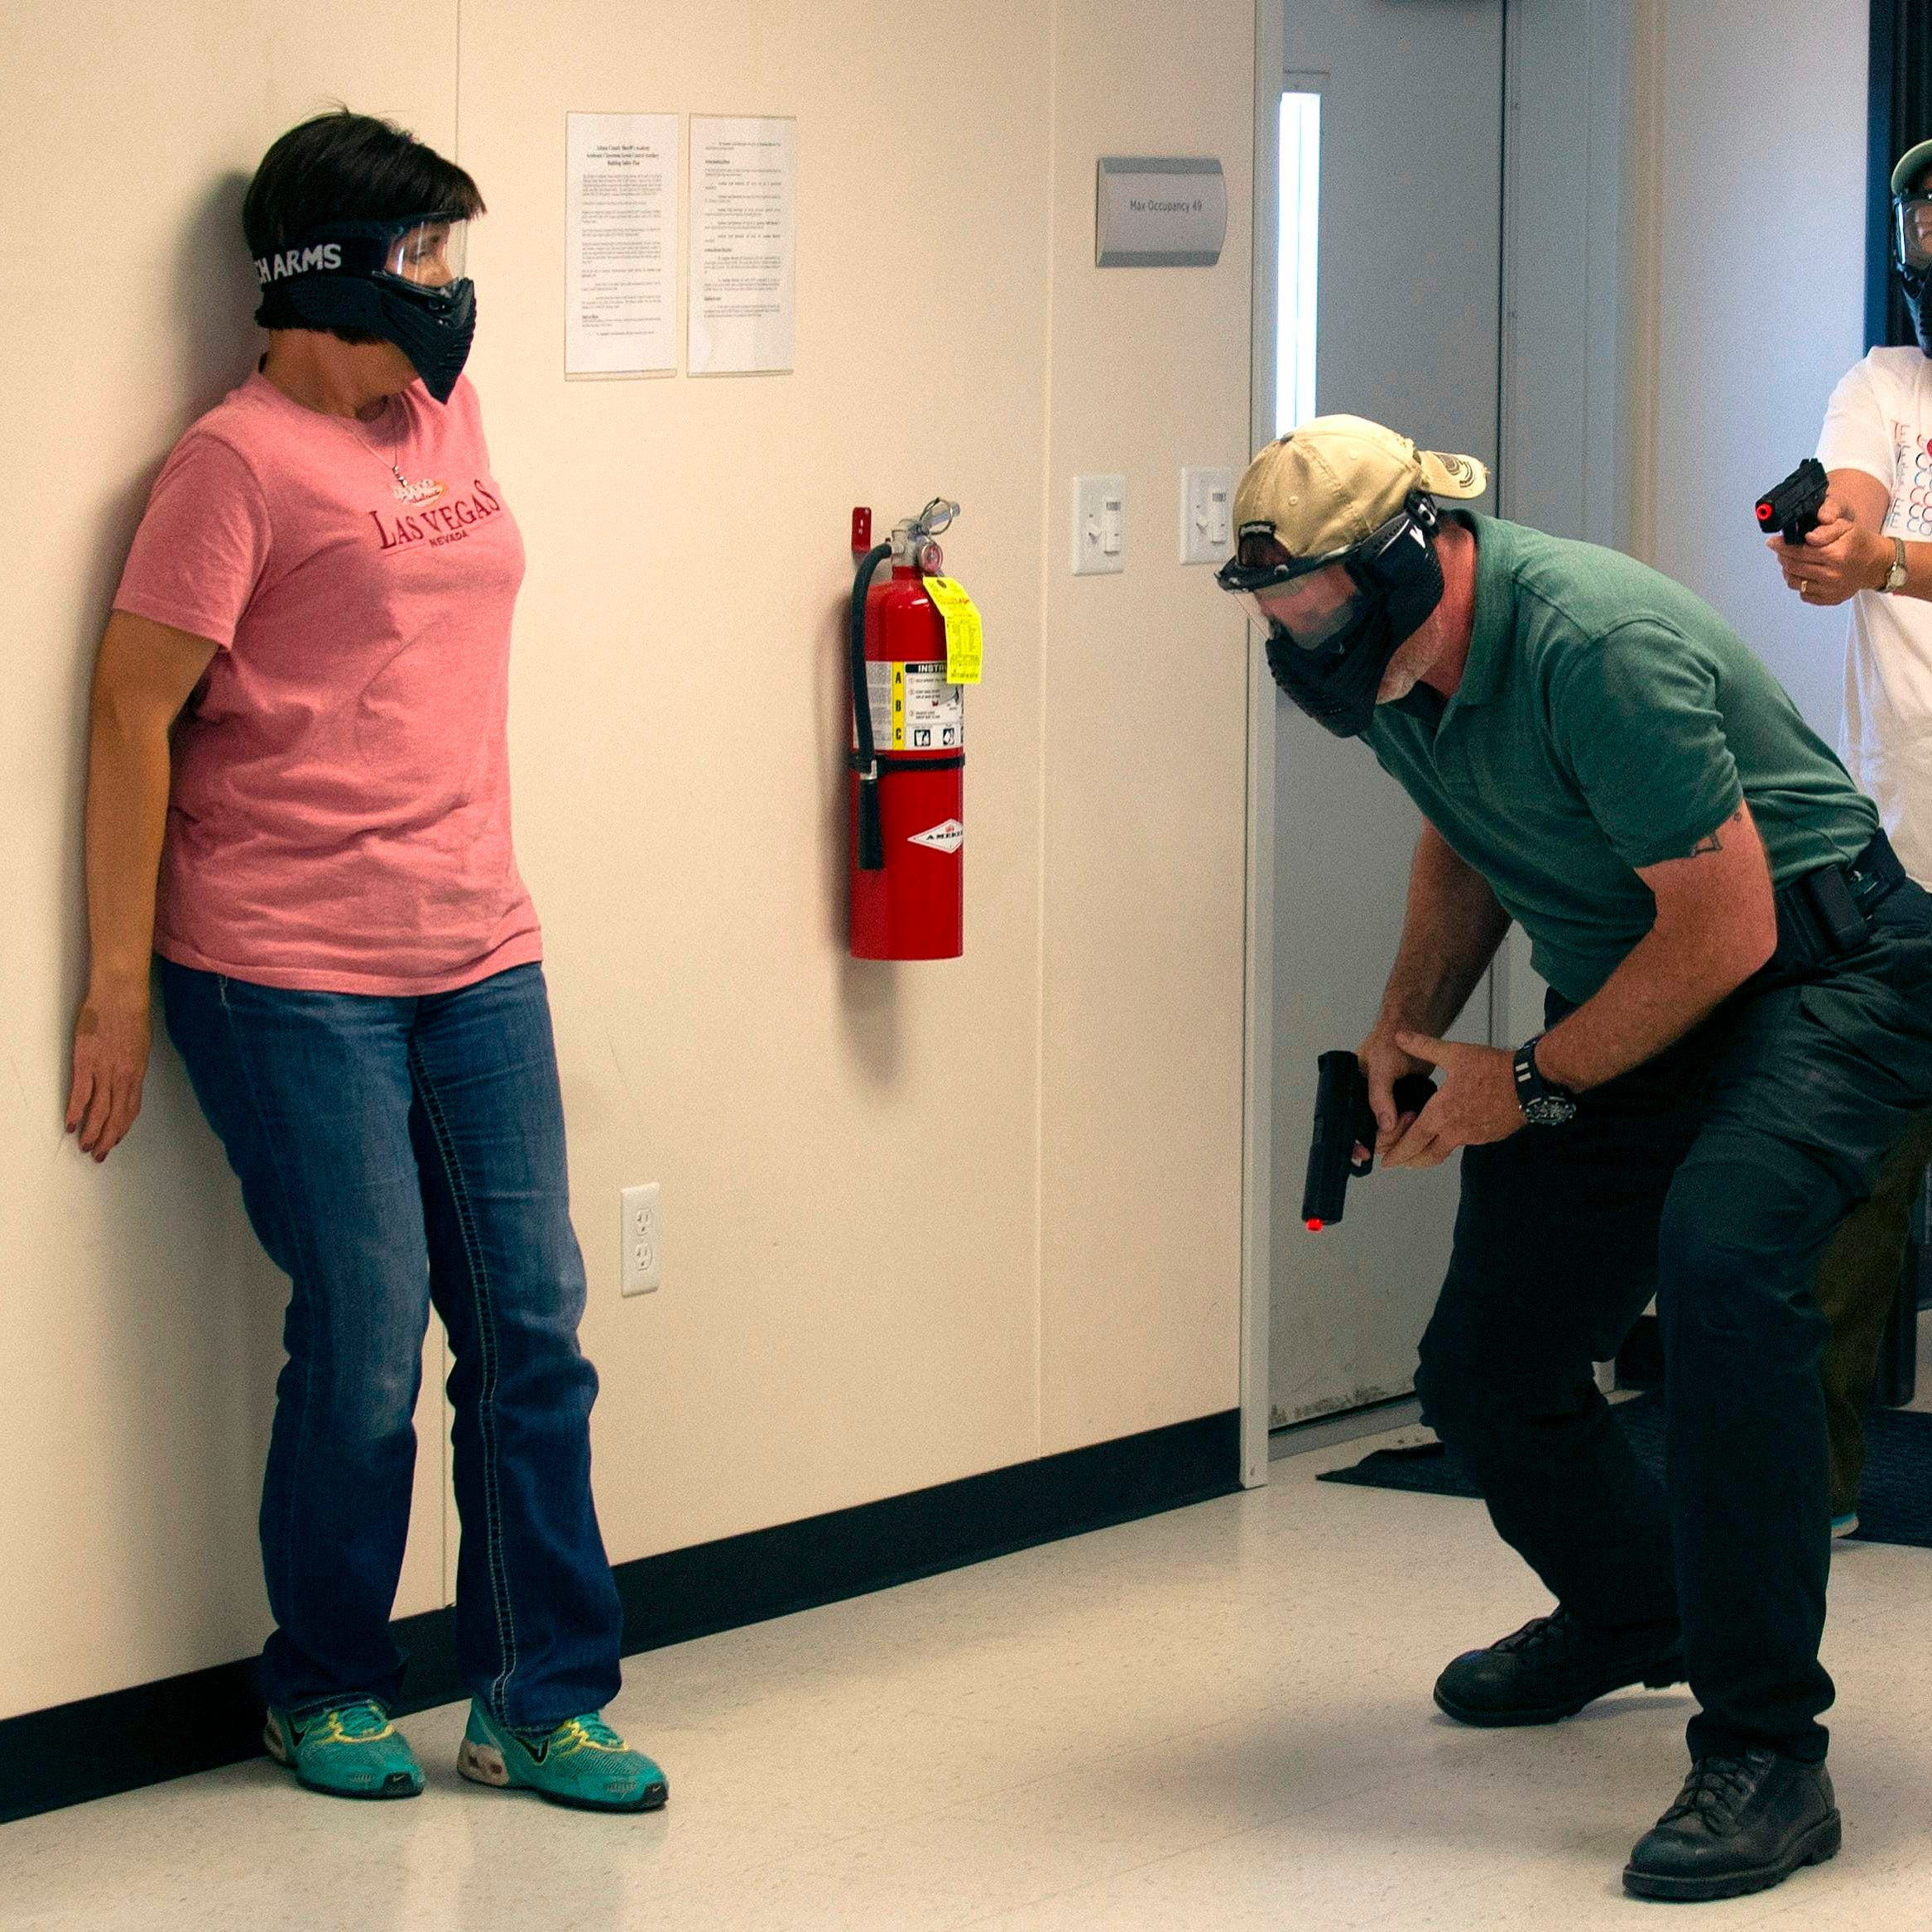 My school's lockdown drills, active shooter training are security theater. Yours are, too.